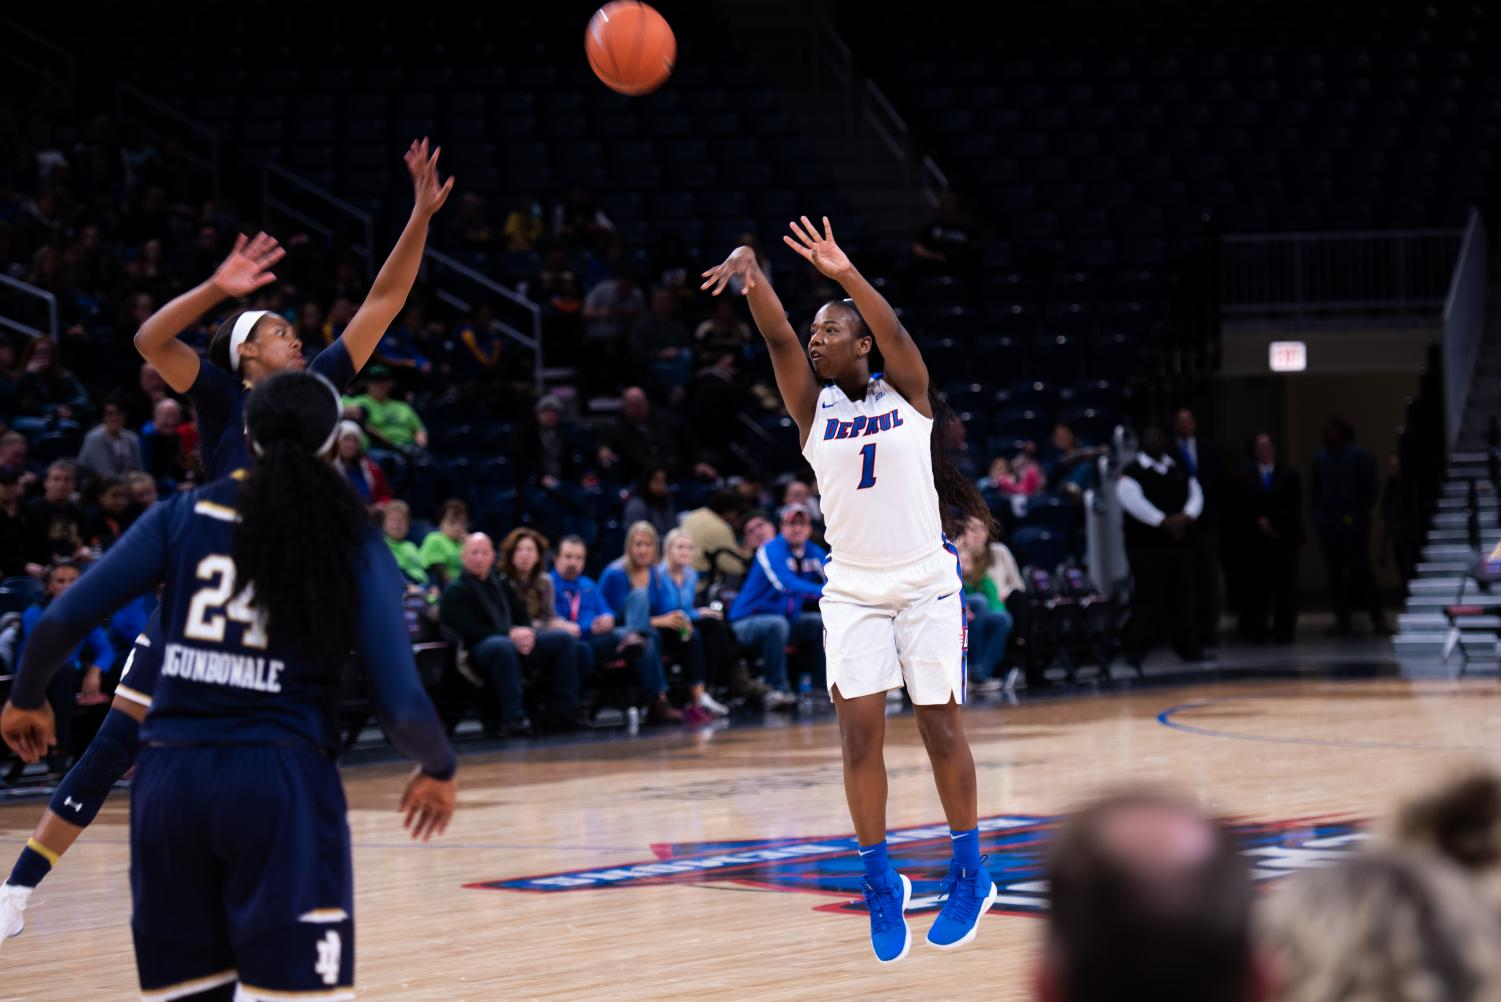 DePaul senior guard Ashton Millender tied a career high with 27 points in a loss to Notre Dame on Saturday at Wintrust Arena. Jonathan Aguilar | The DePaulia